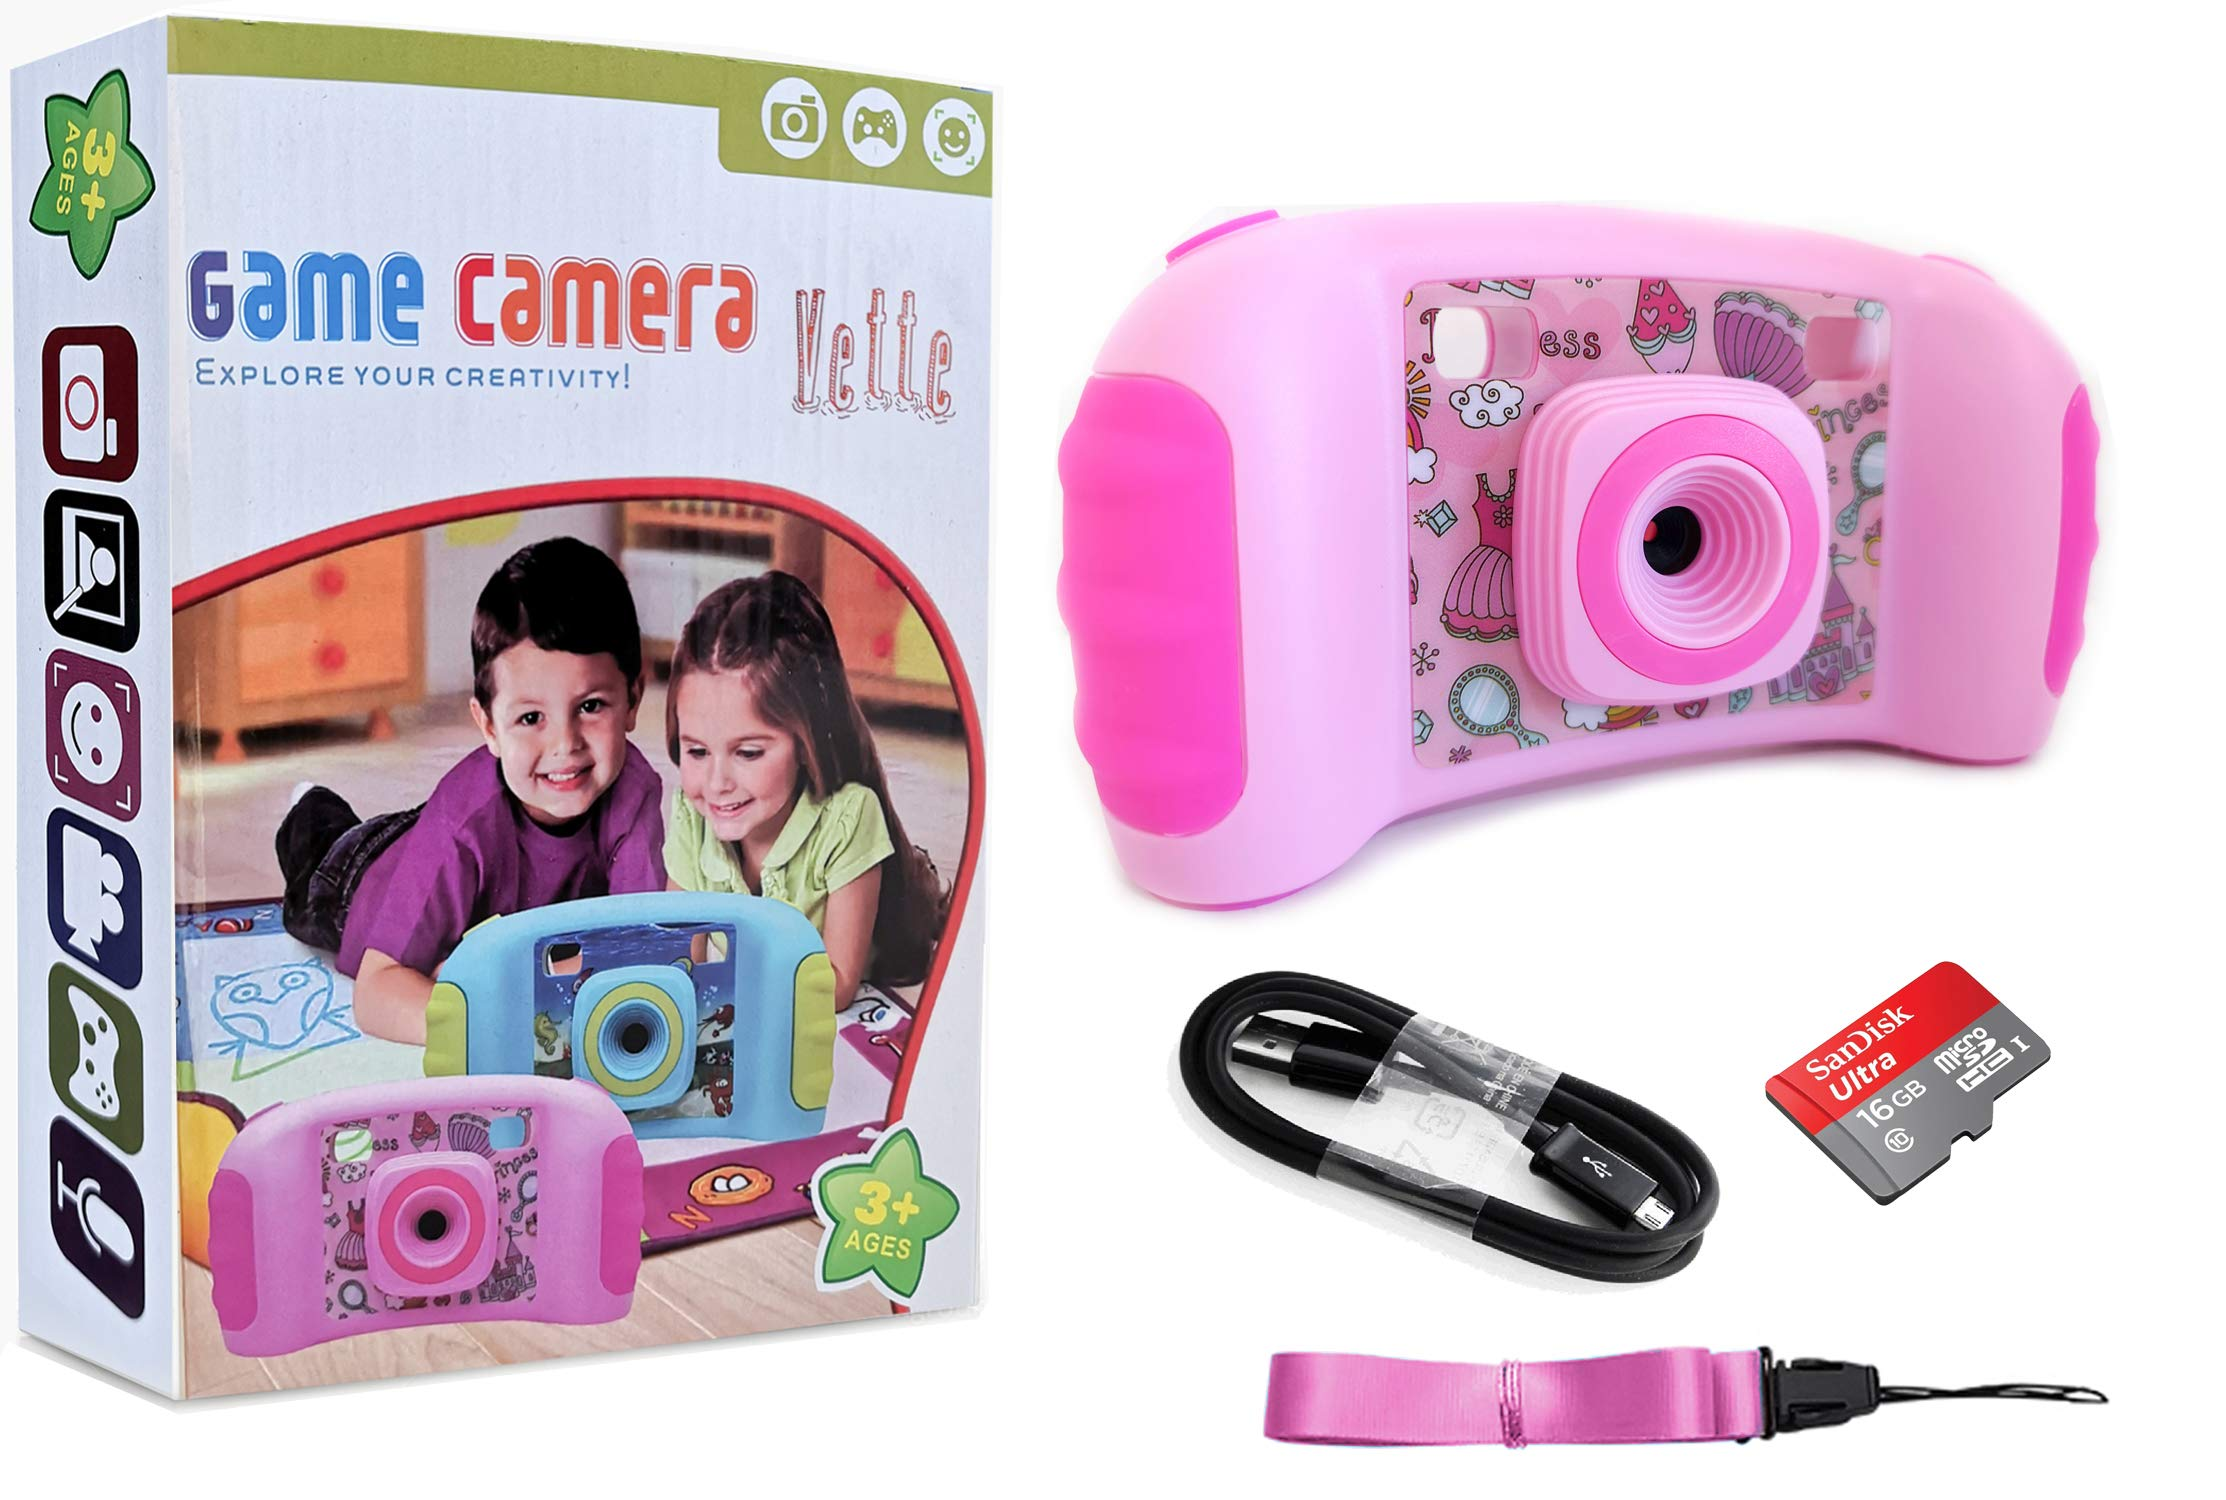 Vetté Digital Camera for Kids with 16GB MicroSD Card - Multifunctional Kids Camera - 2X Zoom, 720 HD Video Quality, 1.8 TFT LCD Screen,Games, Frames, Photo Editing and Voice Recorder Camera (Pink) by Vetté (Image #6)